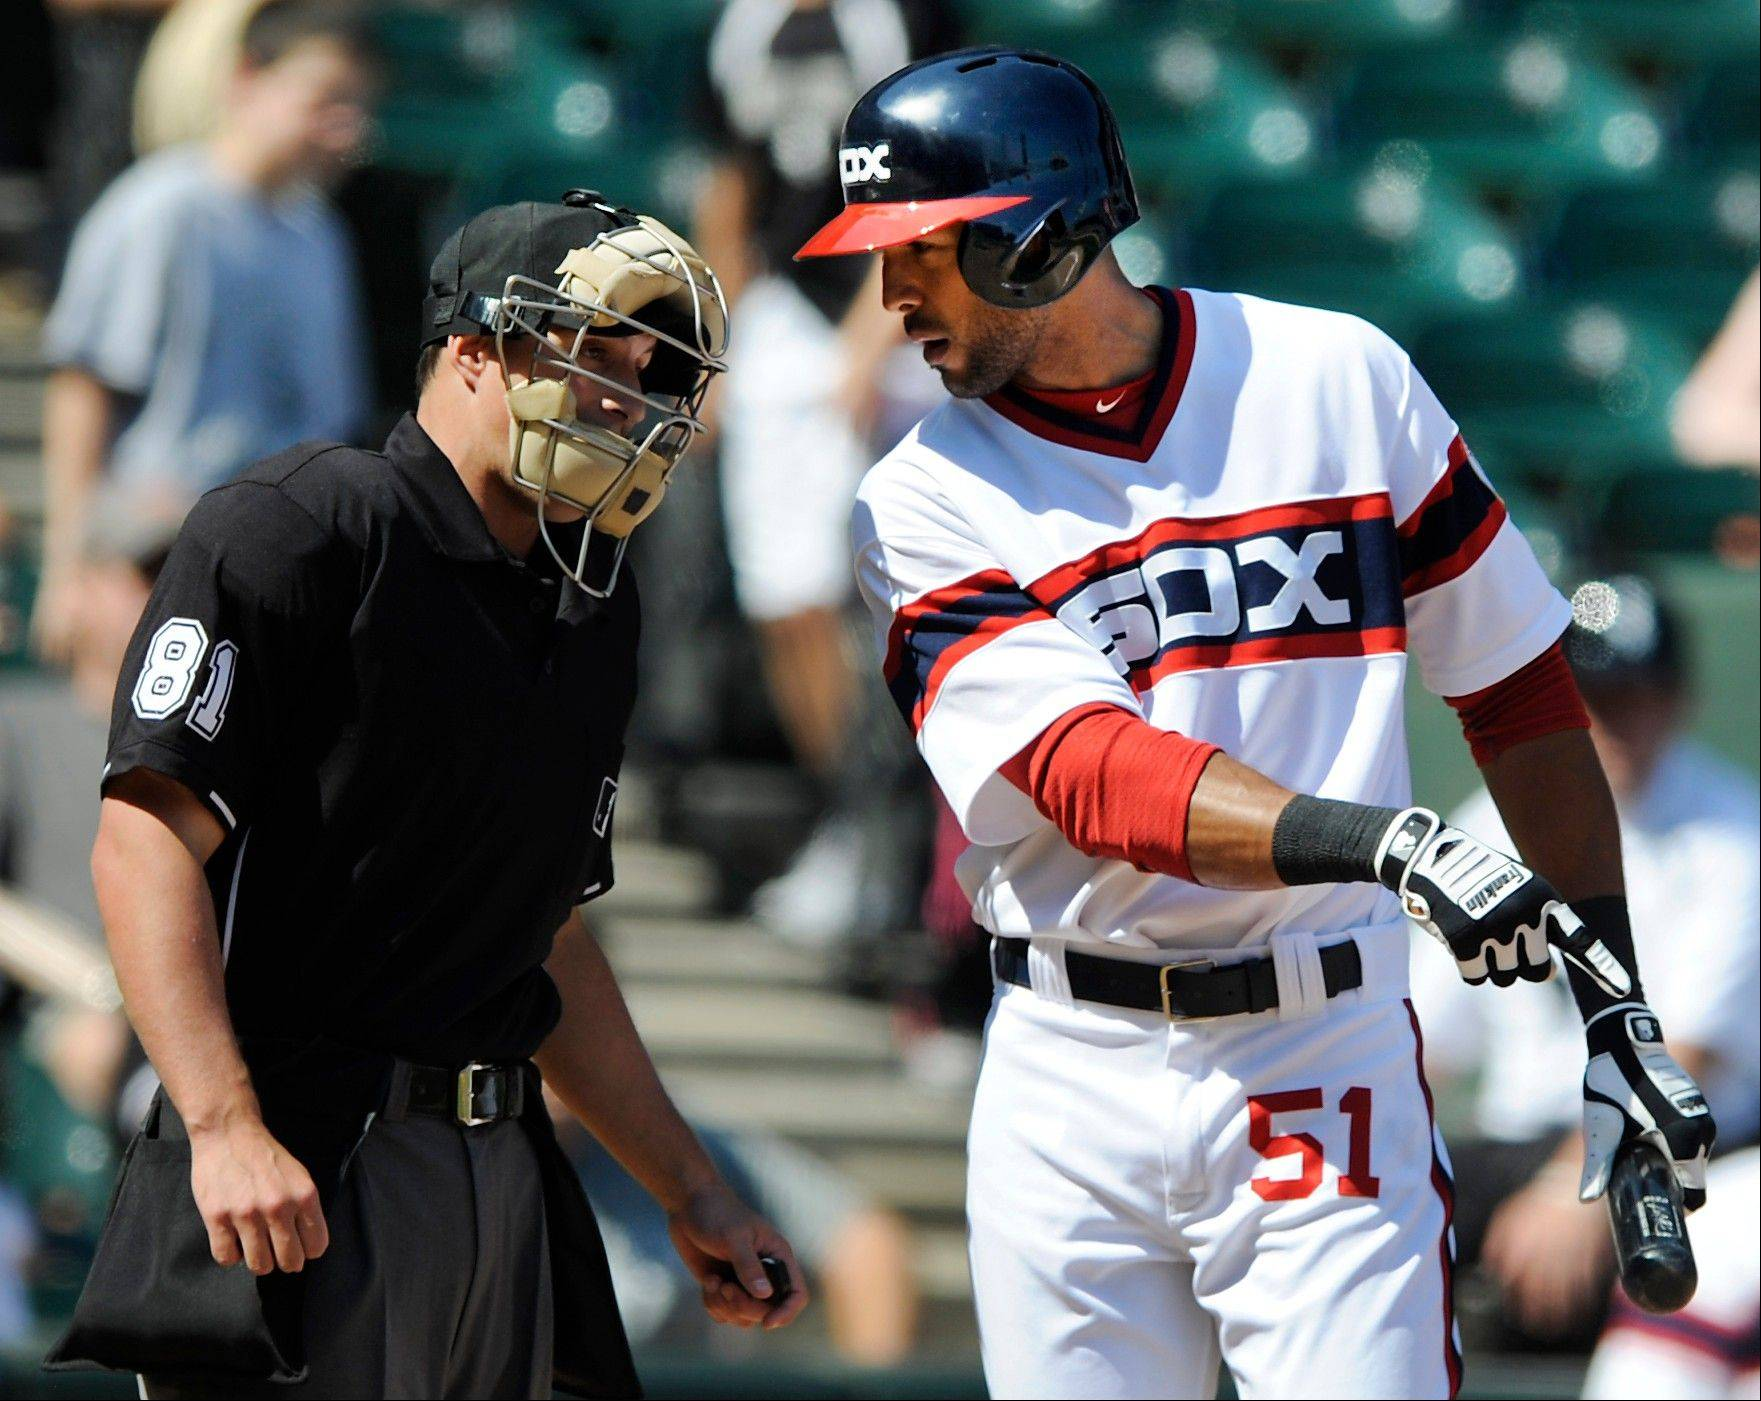 Alex Rios argues with umpire Quinn Wolcott after striking out to end the White Sox' 4-0 loss to the Indians on Sunday.